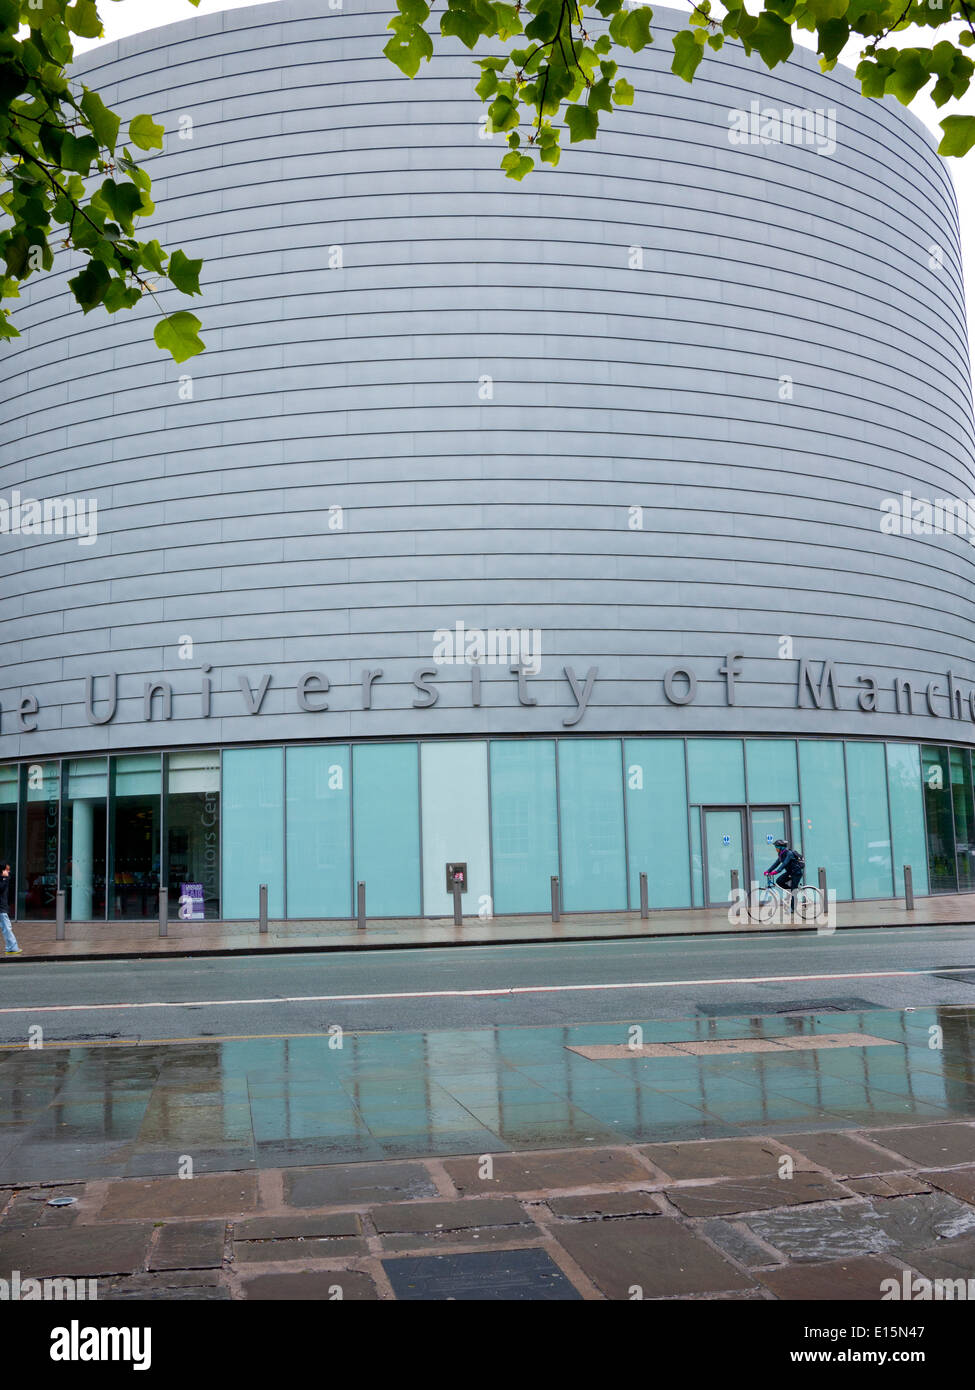 University Place which is for conferences,lectures,and a visitors centre, Oxford rd,  Manchester,UK. - Stock Image